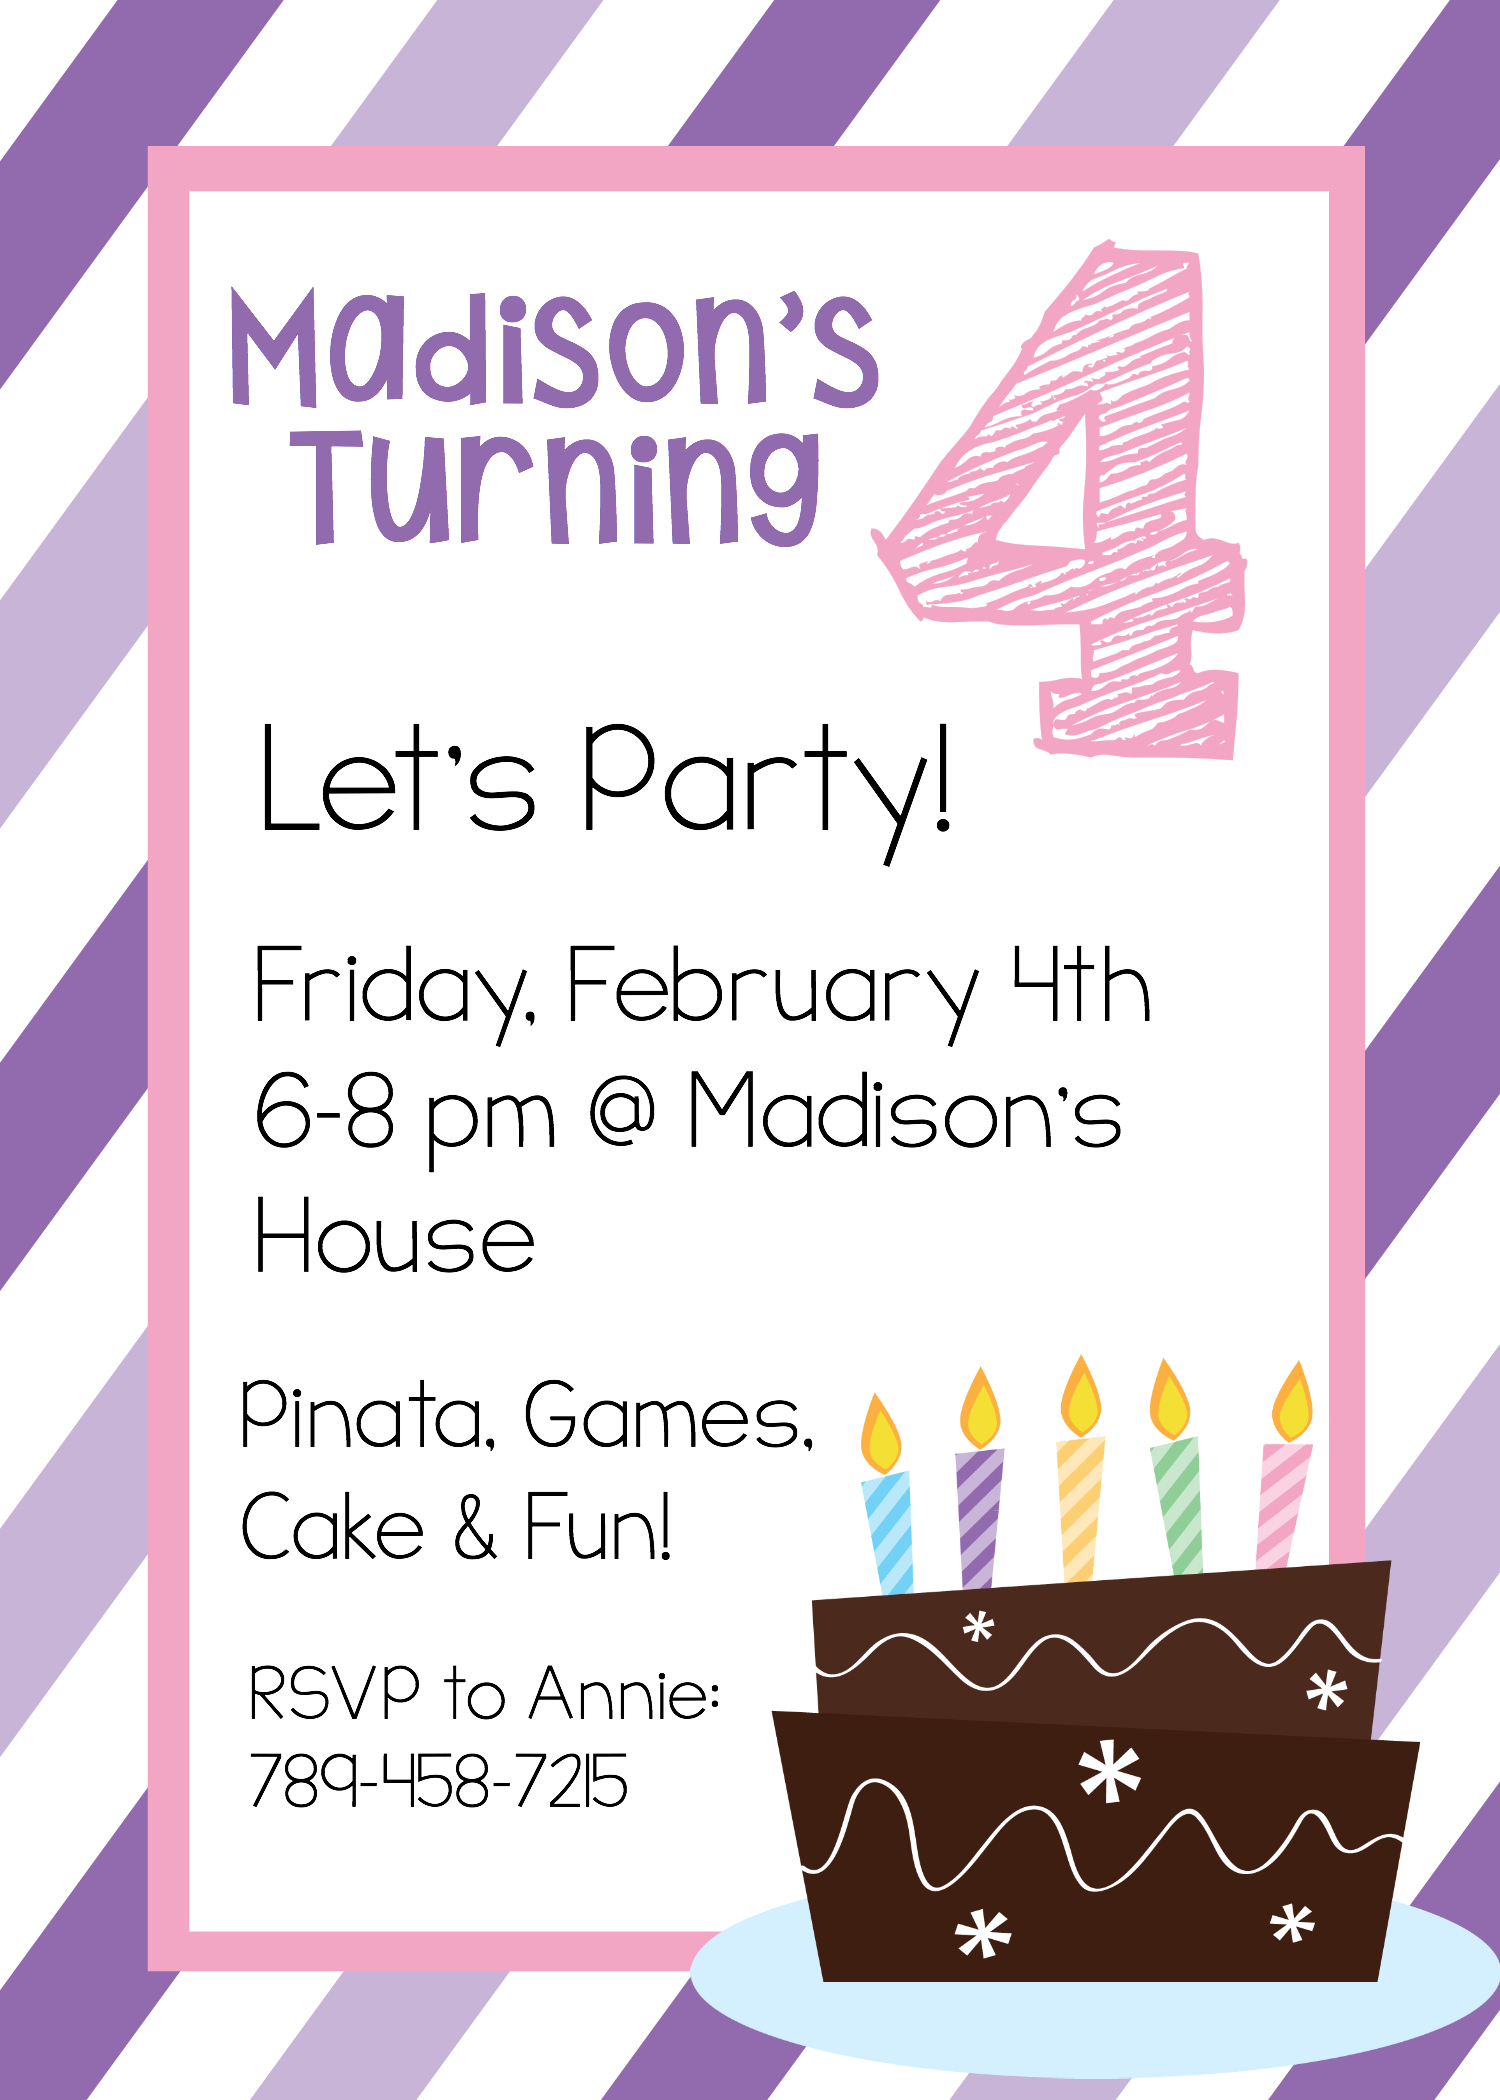 Free Printable Birthday Invitation Templates - Free photo party invitation templates